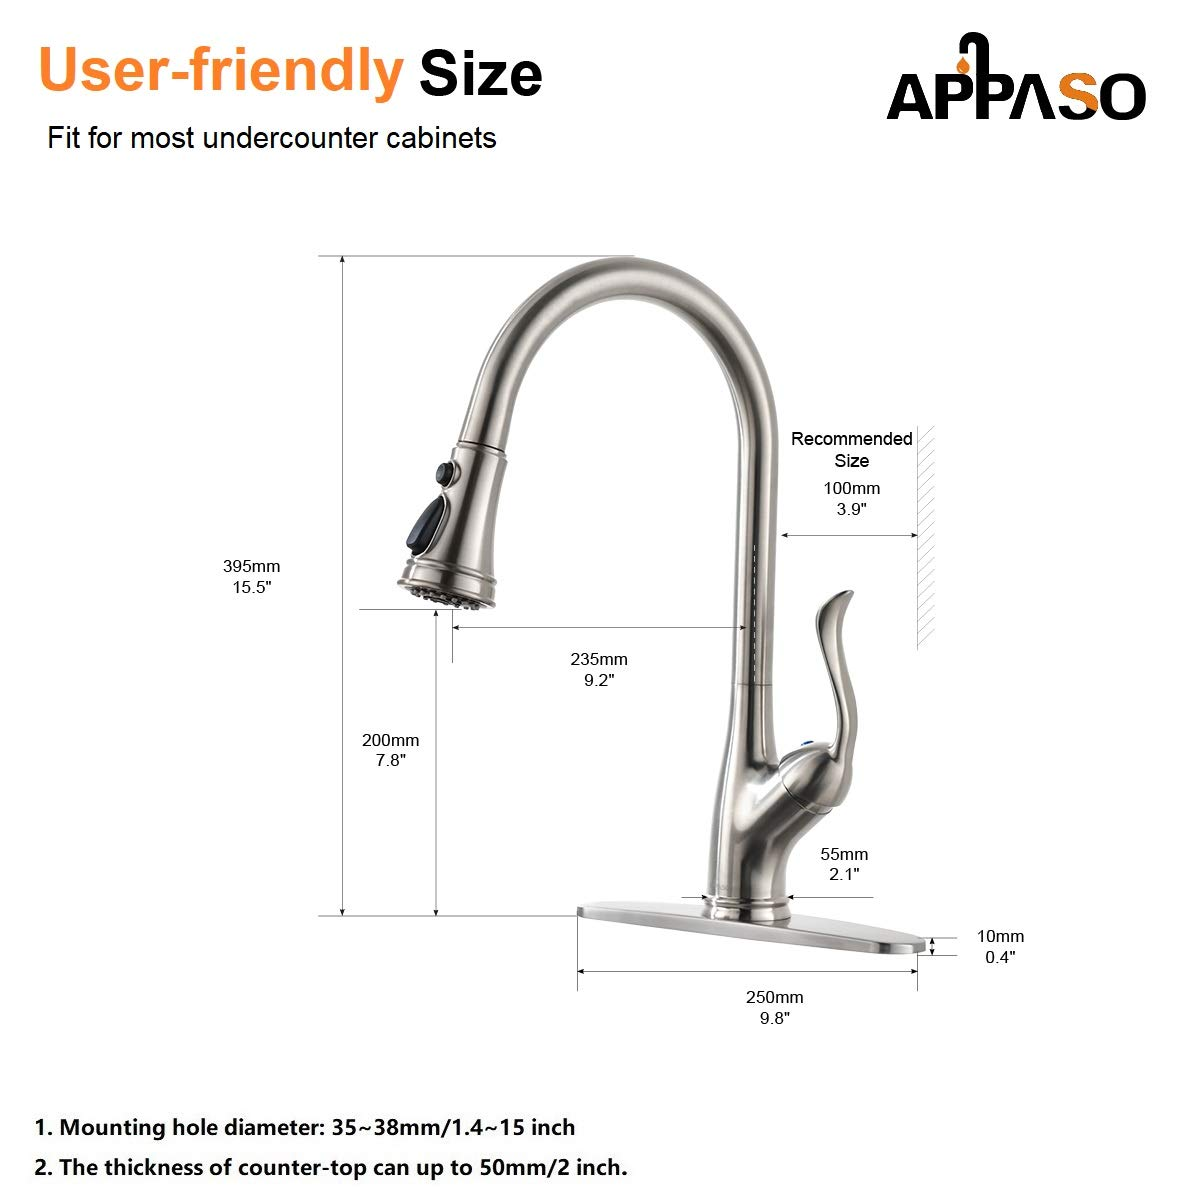 APPASO Single Handle Pull Down Kitchen Faucet with Sprayer, Stainless Steel Brushed Nickel High Arc Single Hole Pull Out Spray Head Kitchen Sink Faucet with Escutcheon by APPASO (Image #7)